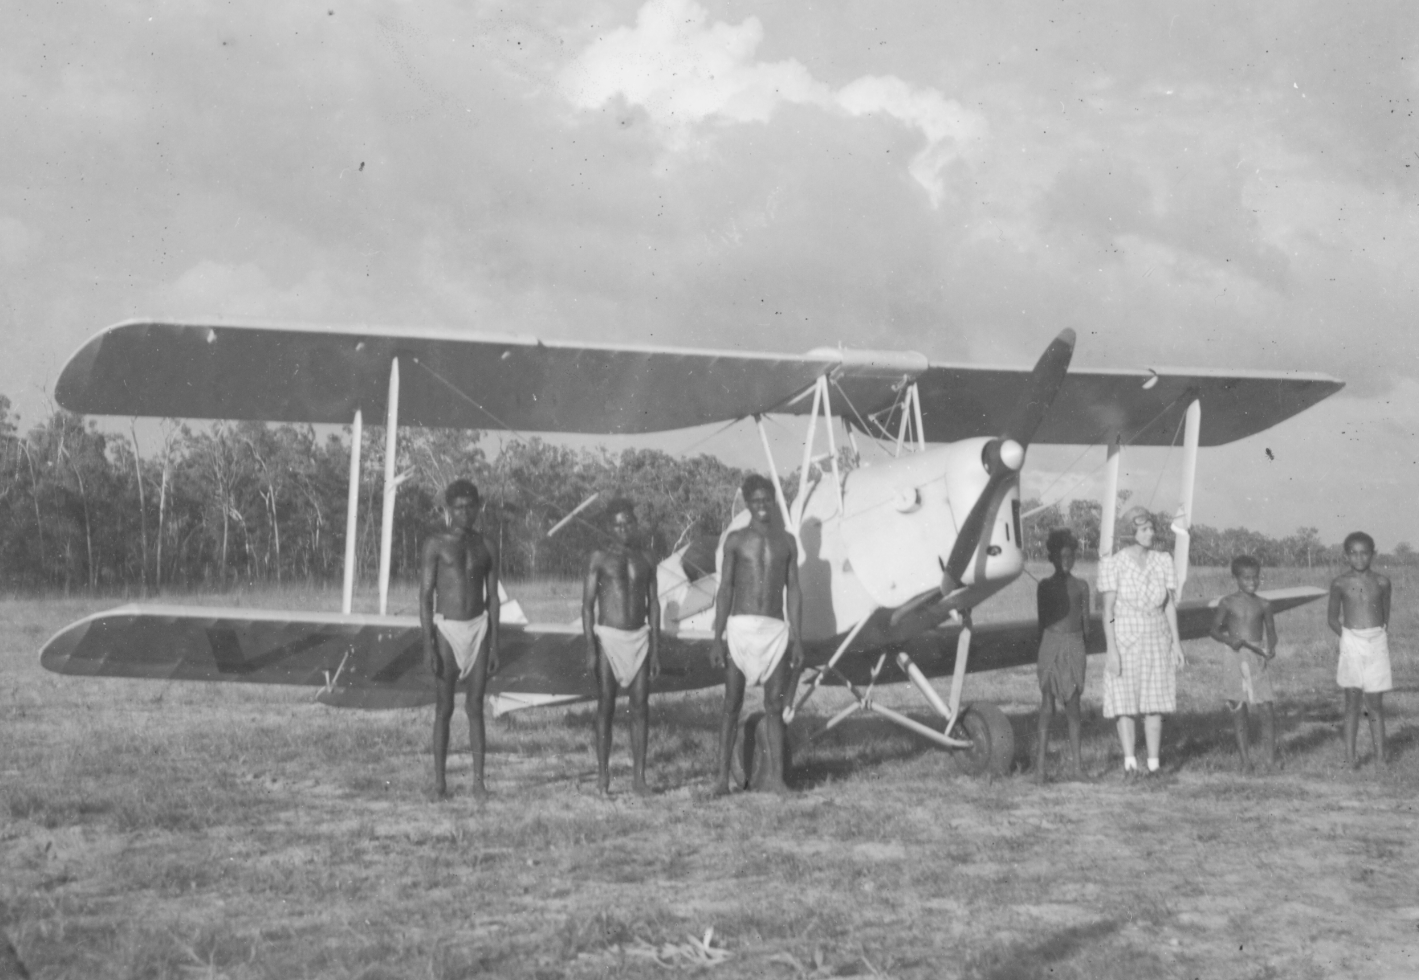 European woman posing alongside six Aboriginal boys in front of a tiger moth aeroplane